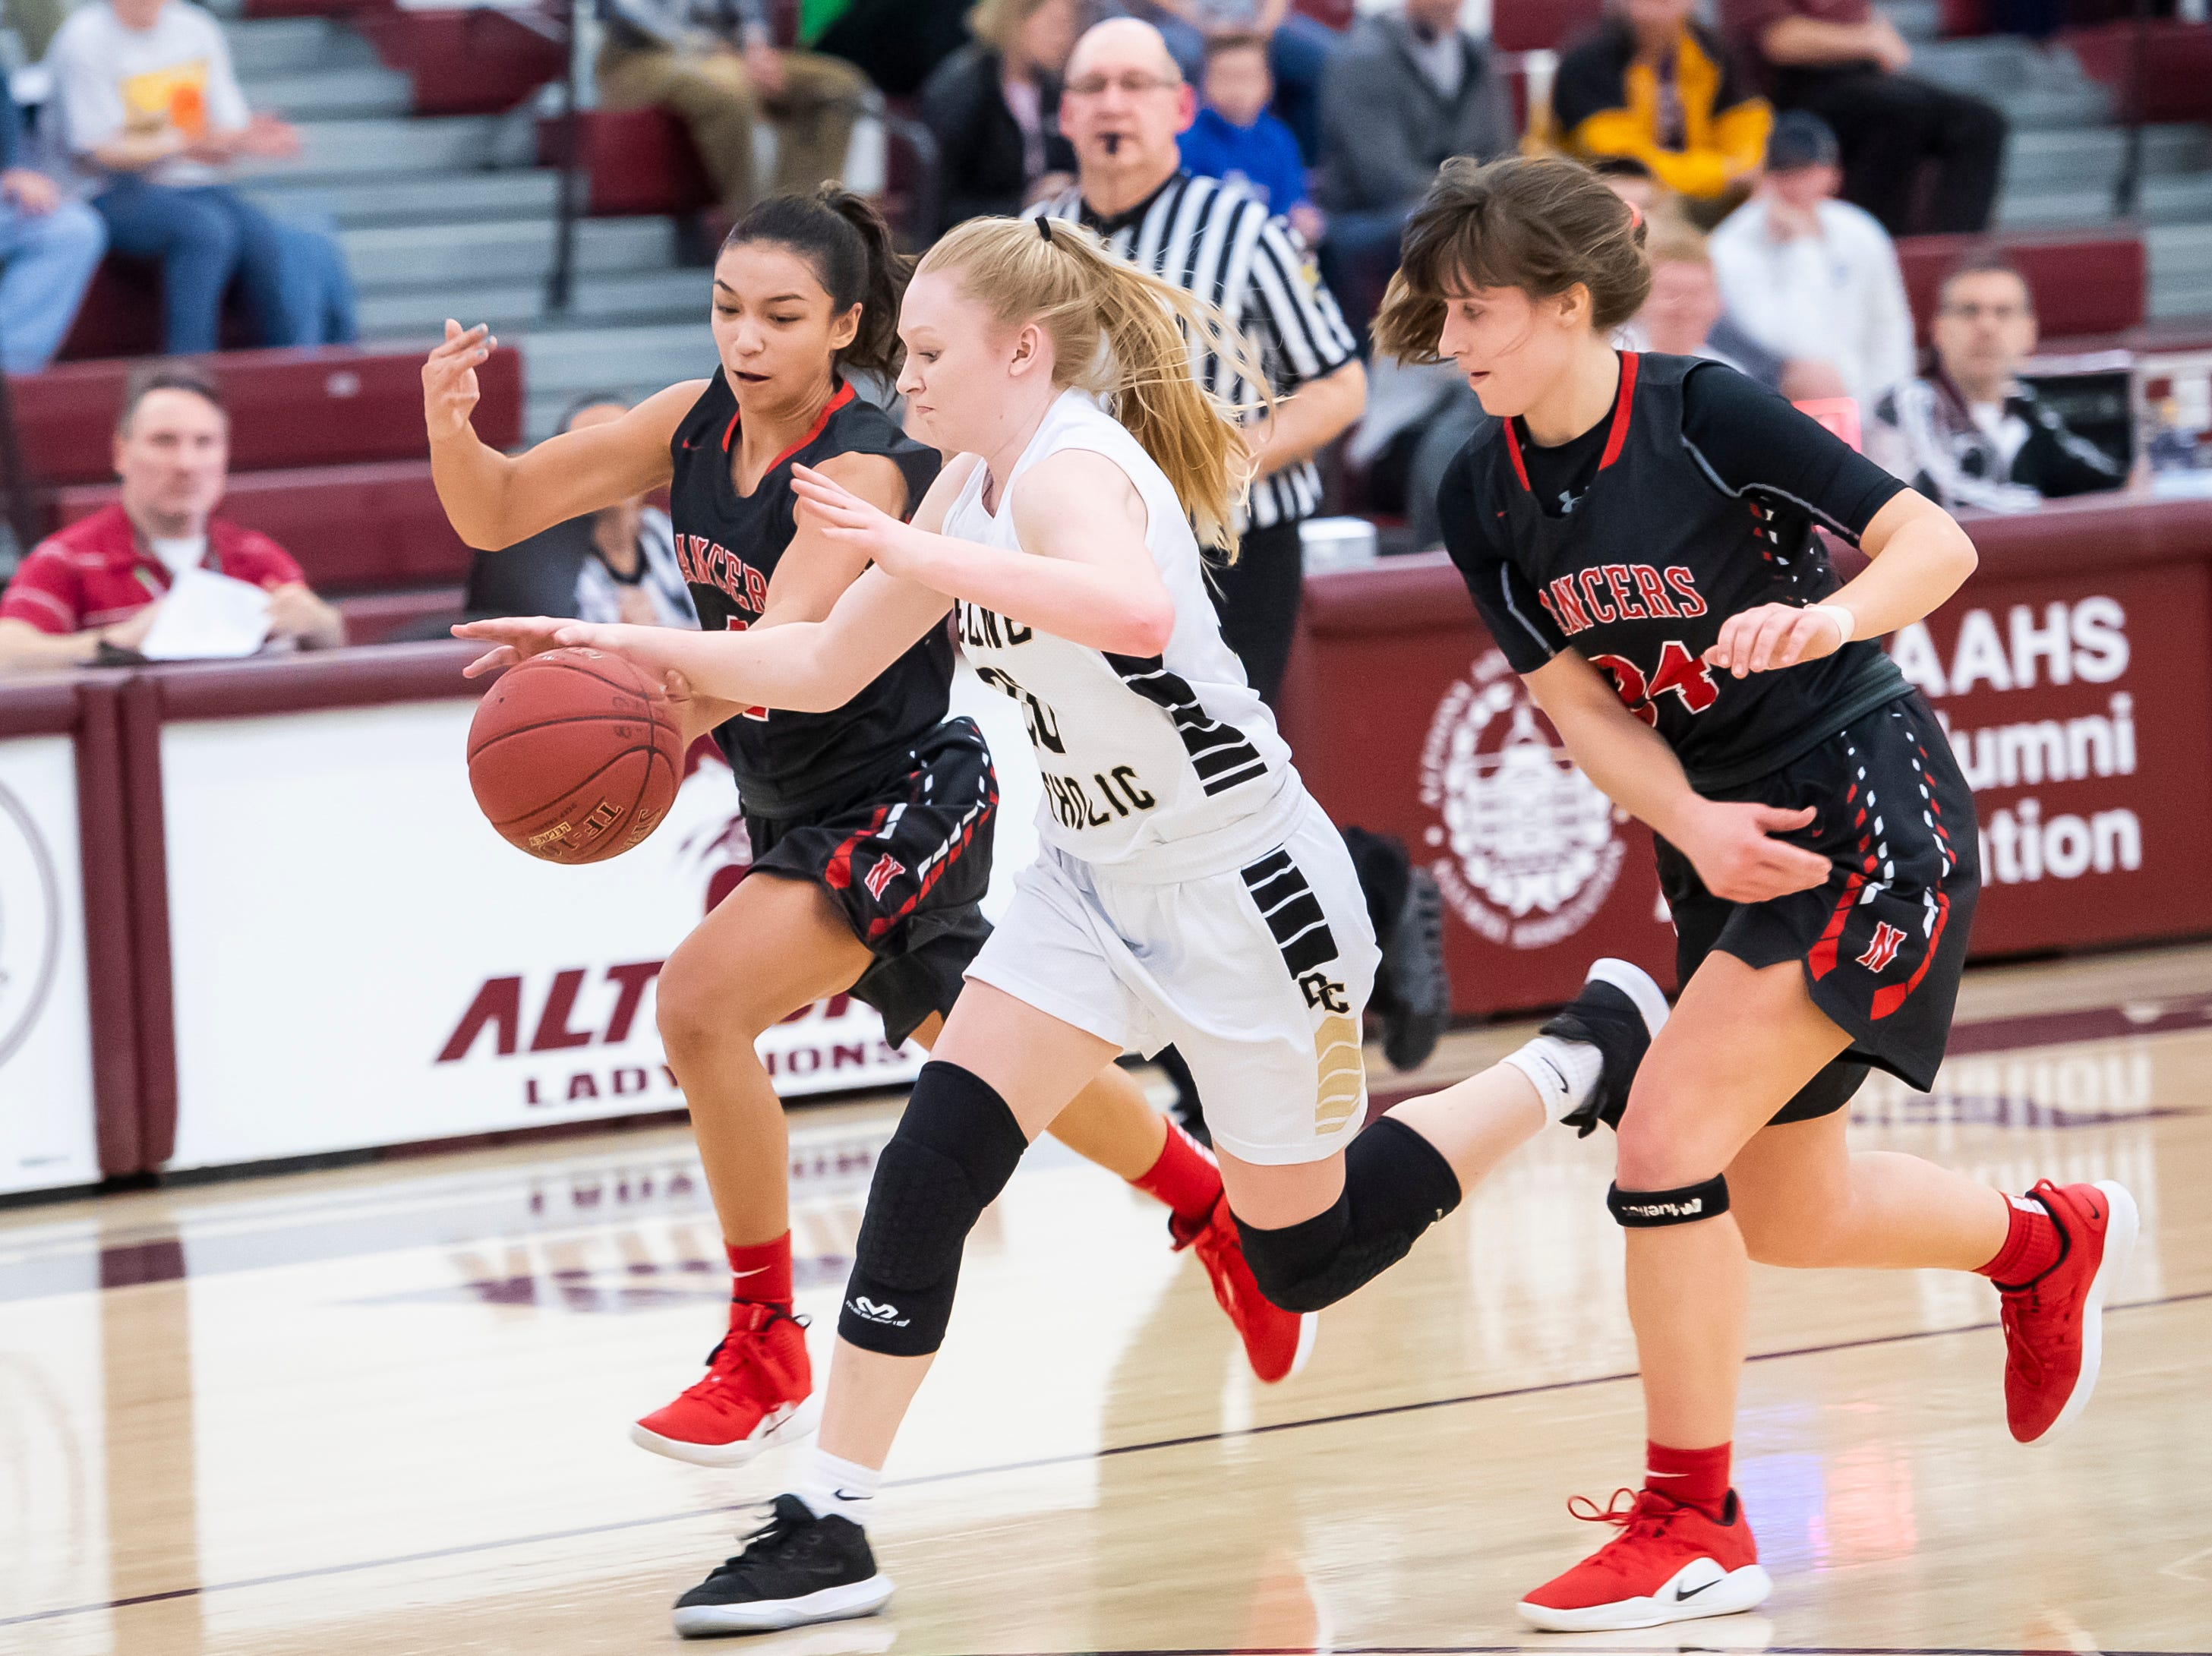 Delone Catholic's Brooke Lawyer dribbles down the court between Neshannock's Neleh Nogay and Brianna Dean to score a layup during a PIAA 3A quarterfinal in Altoona, Pa., on Friday, March 15, 2019. The Squirettes won 50-41.